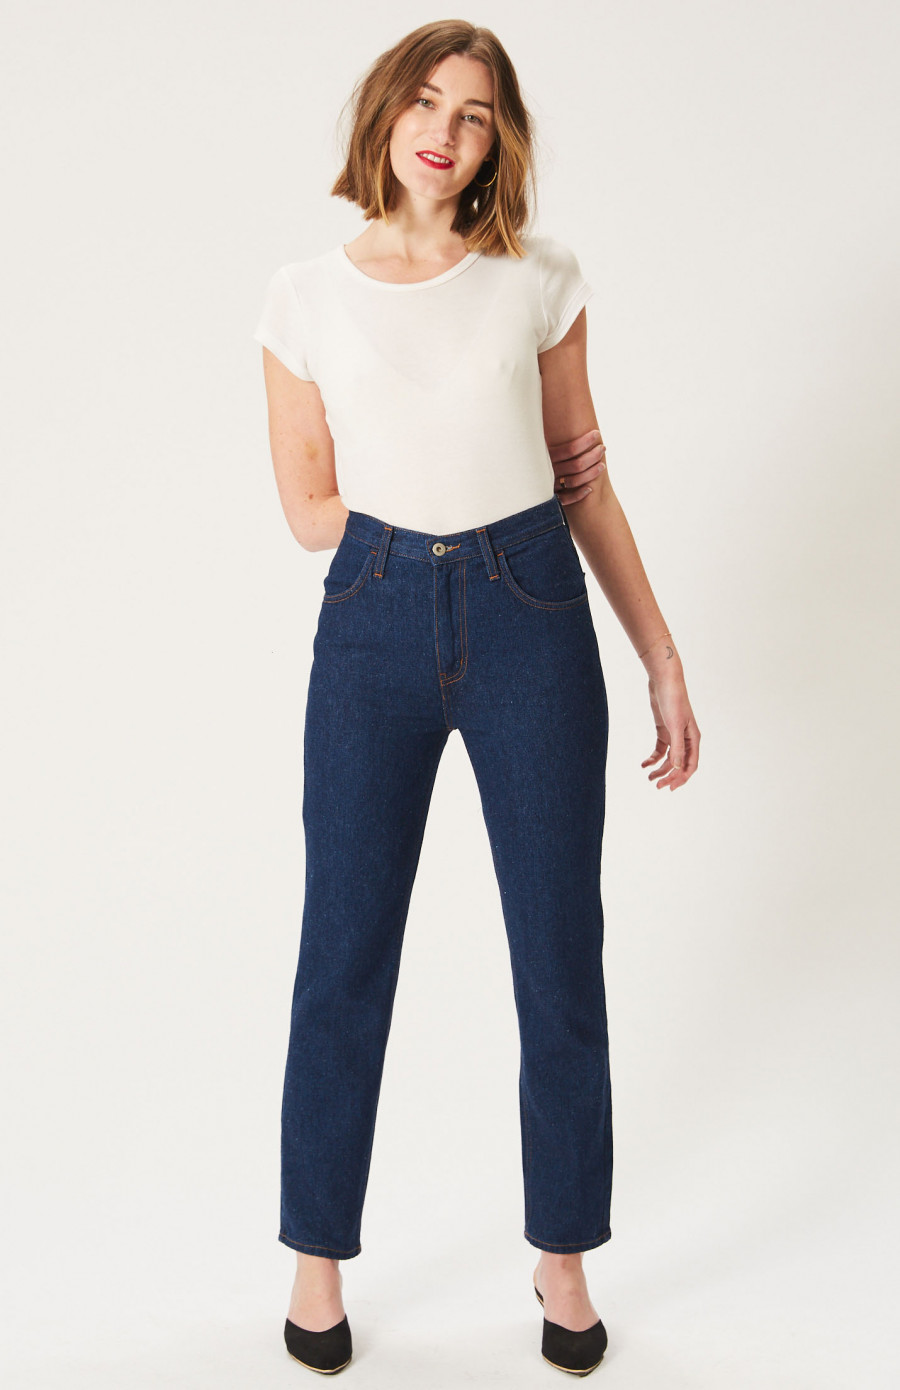 5. Hemp jeans - Sustainable style that's warm in heart and soul.